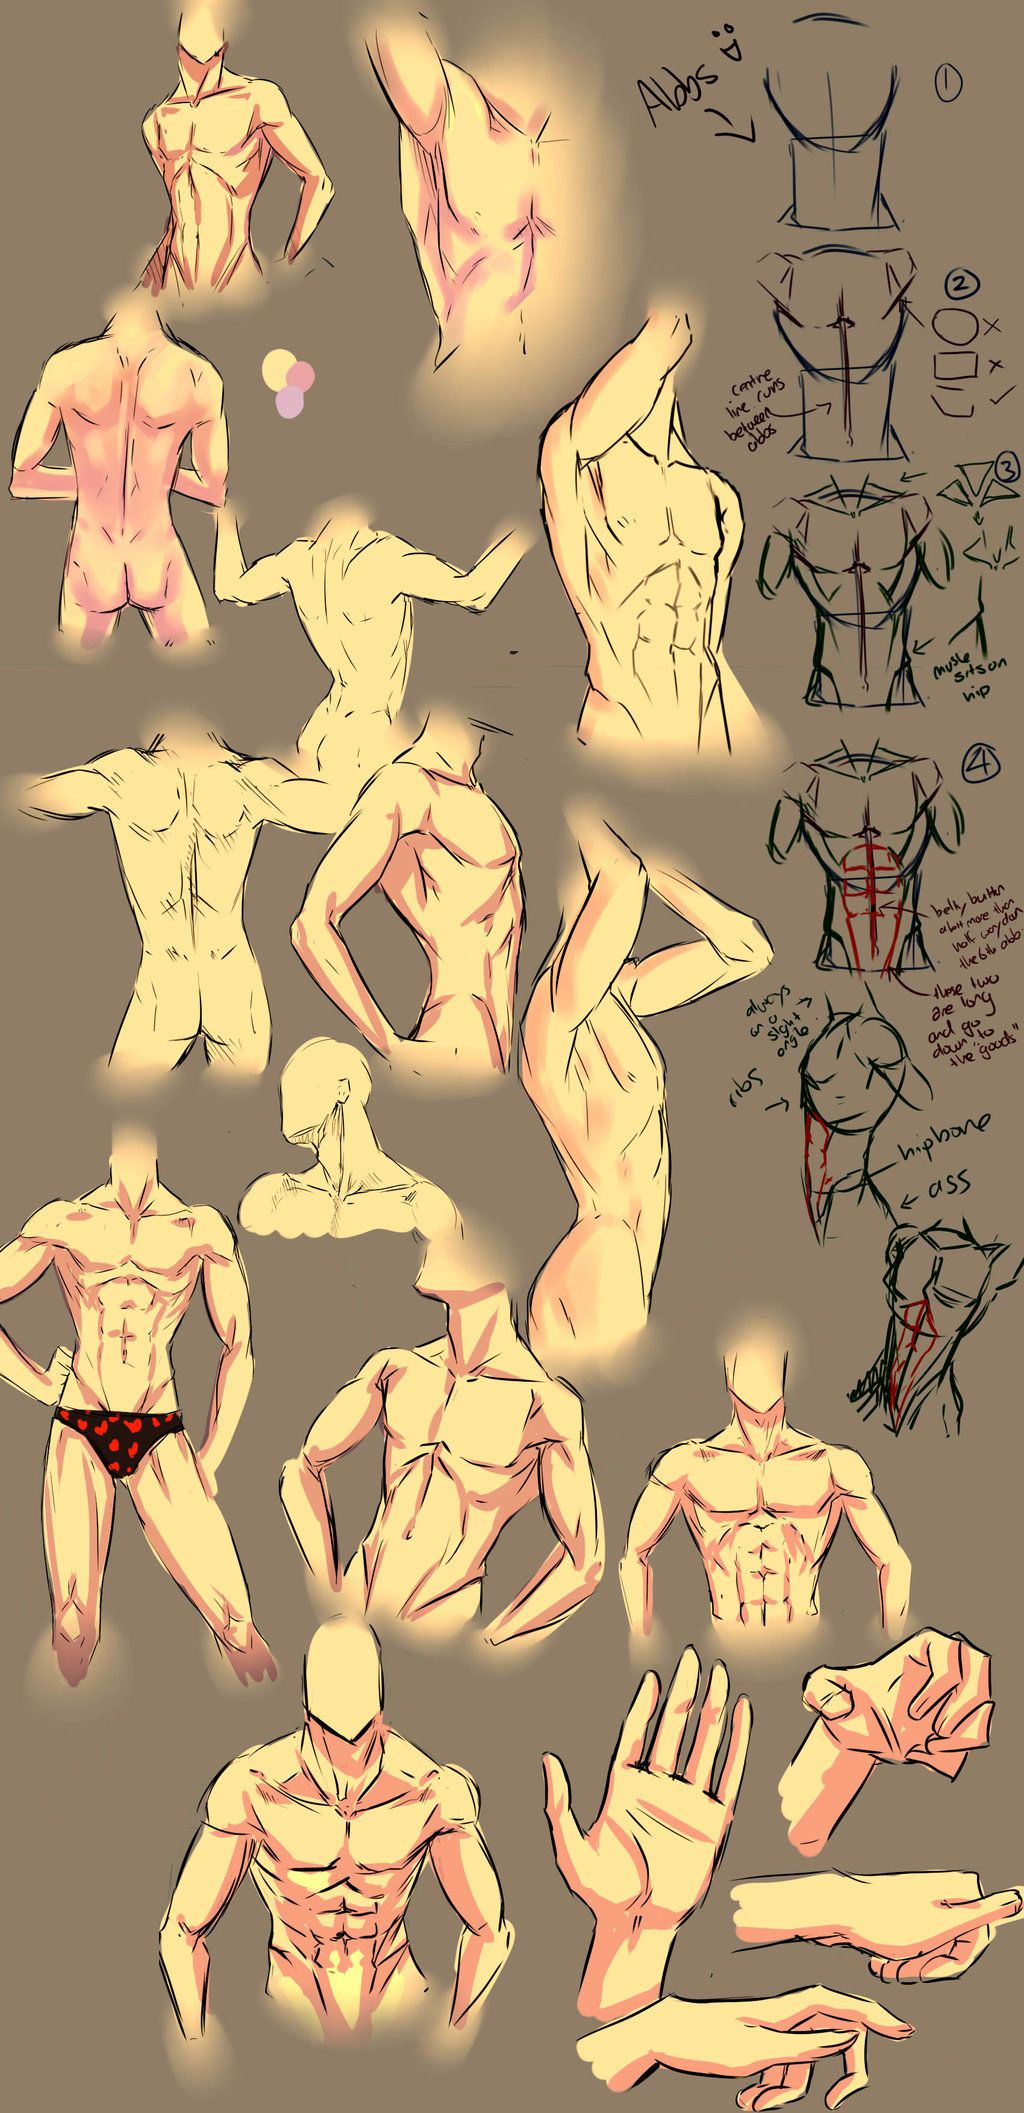 How To Draw Anime Master Anime Ecchi Picture Wallpapers http ...